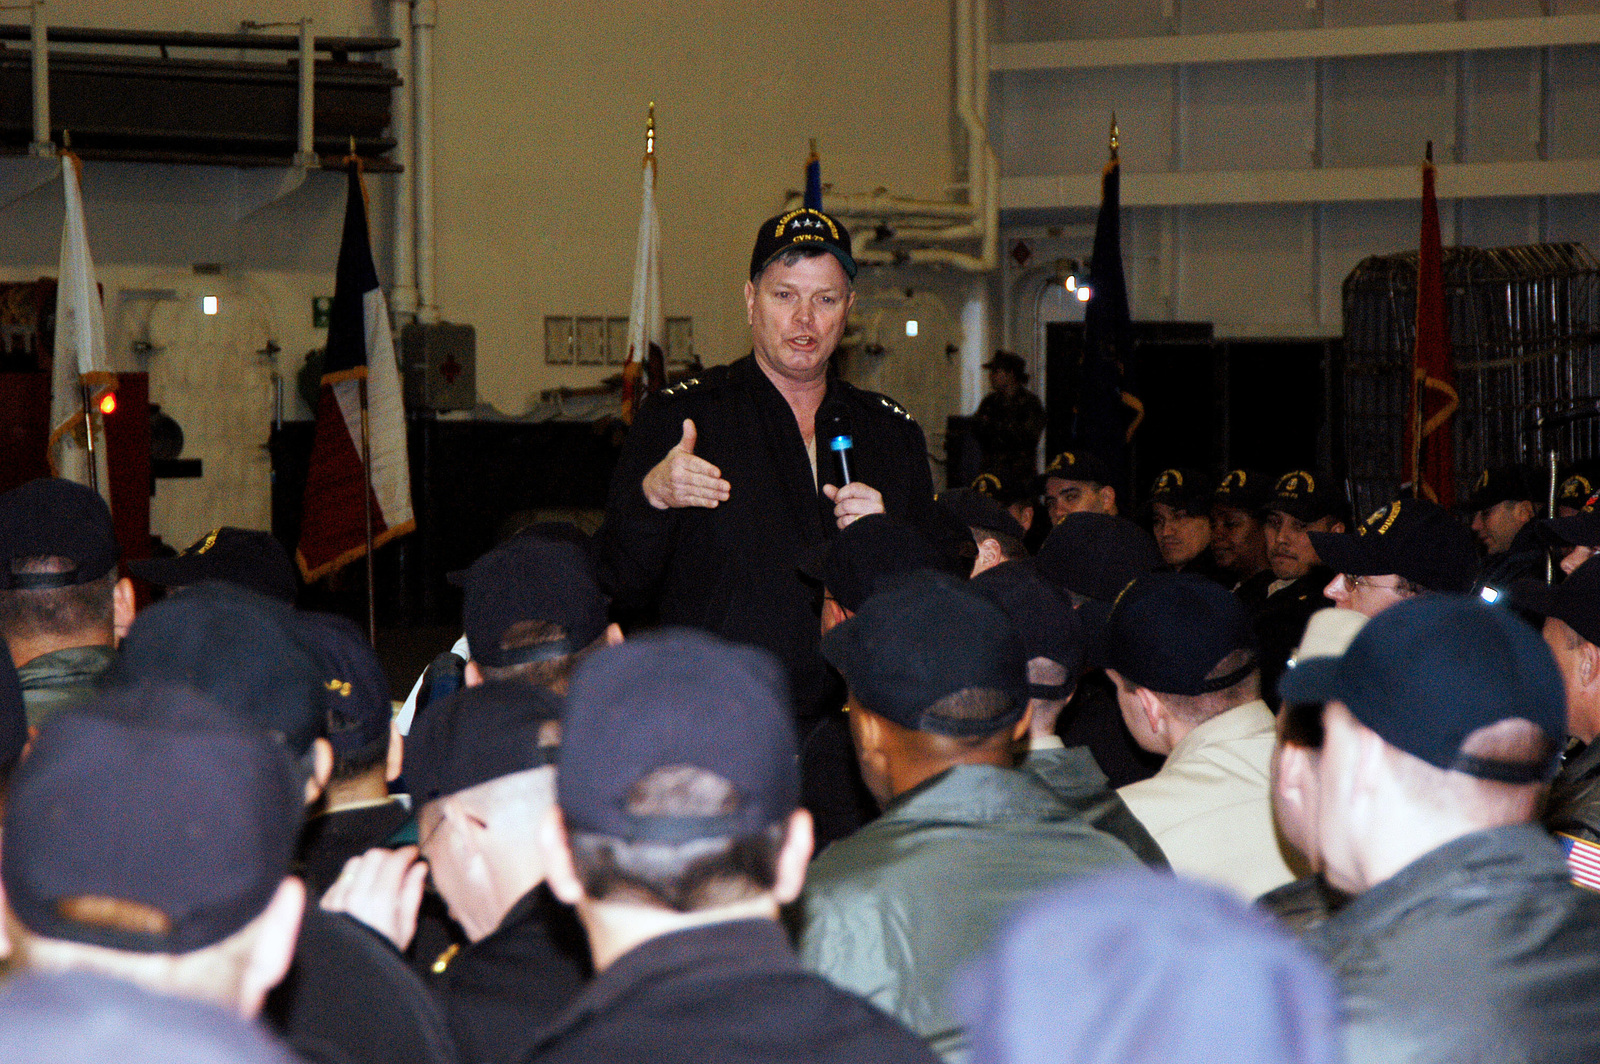 """At the Norfolk Naval Base (NB), Virginia (VA), US Navy (USN) Vice Admiral (VADM) Walter Massenburg addresses Sailors in the hangar bay aboard the USN Nimitz Class Aircraft Carrier USS GEORGE WASHINGTON (CVN 73), during the first ever """"Boots on the Deck"""" visit to an aircraft carrier"""